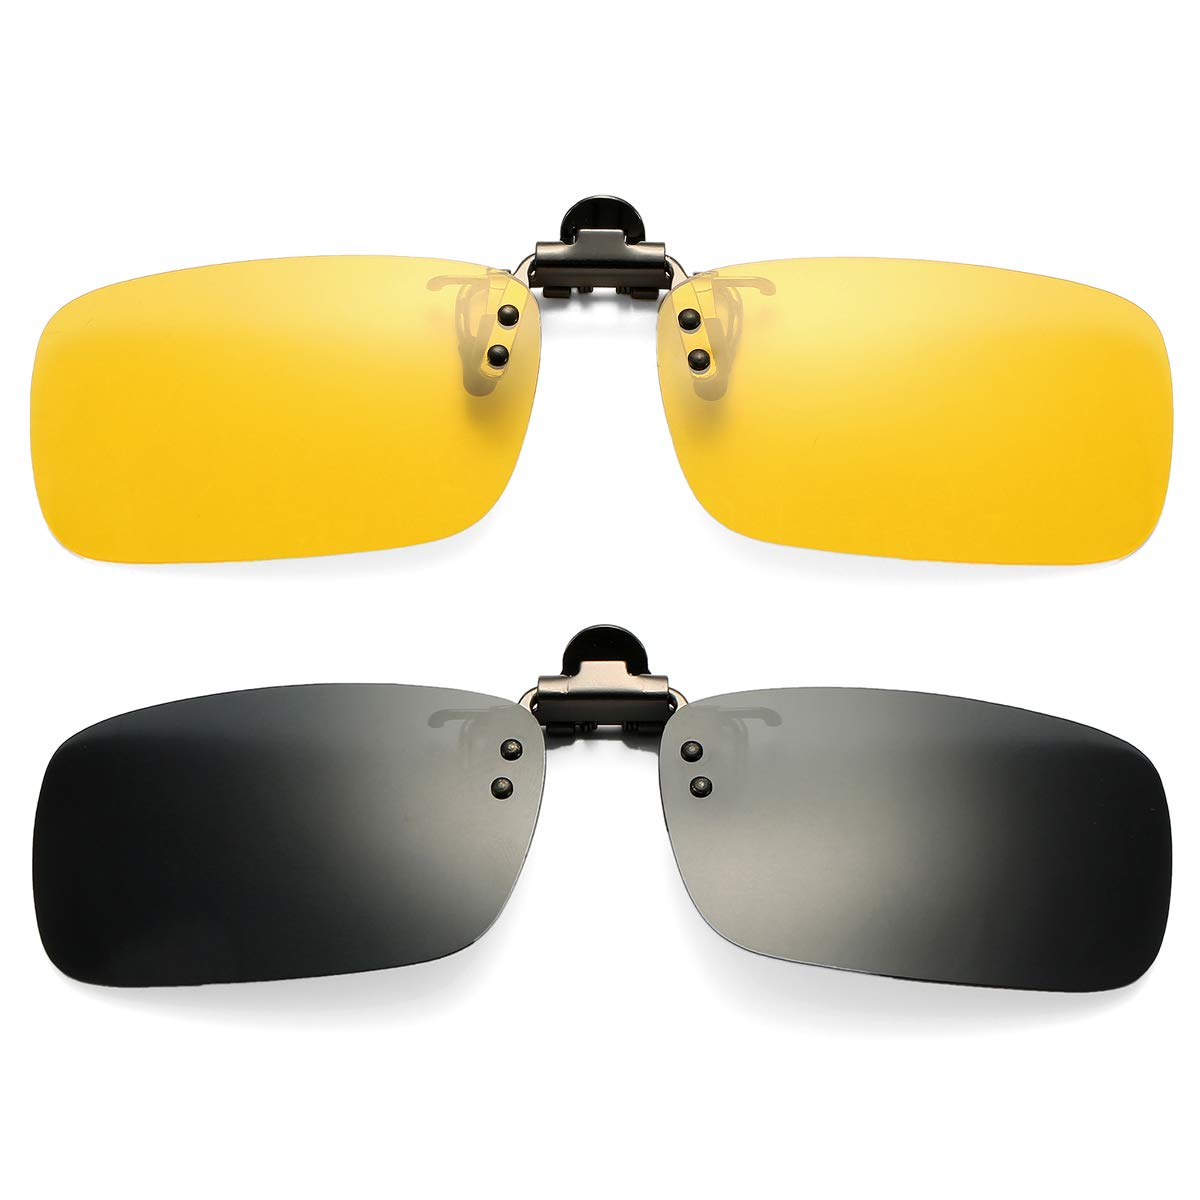 Pro Acme Polarized Clip on Sunglasses Unisex Frameless Rectangle Lens (2-Pack) (Black + Yellow/Night Vision Glasses) by Pro Acme